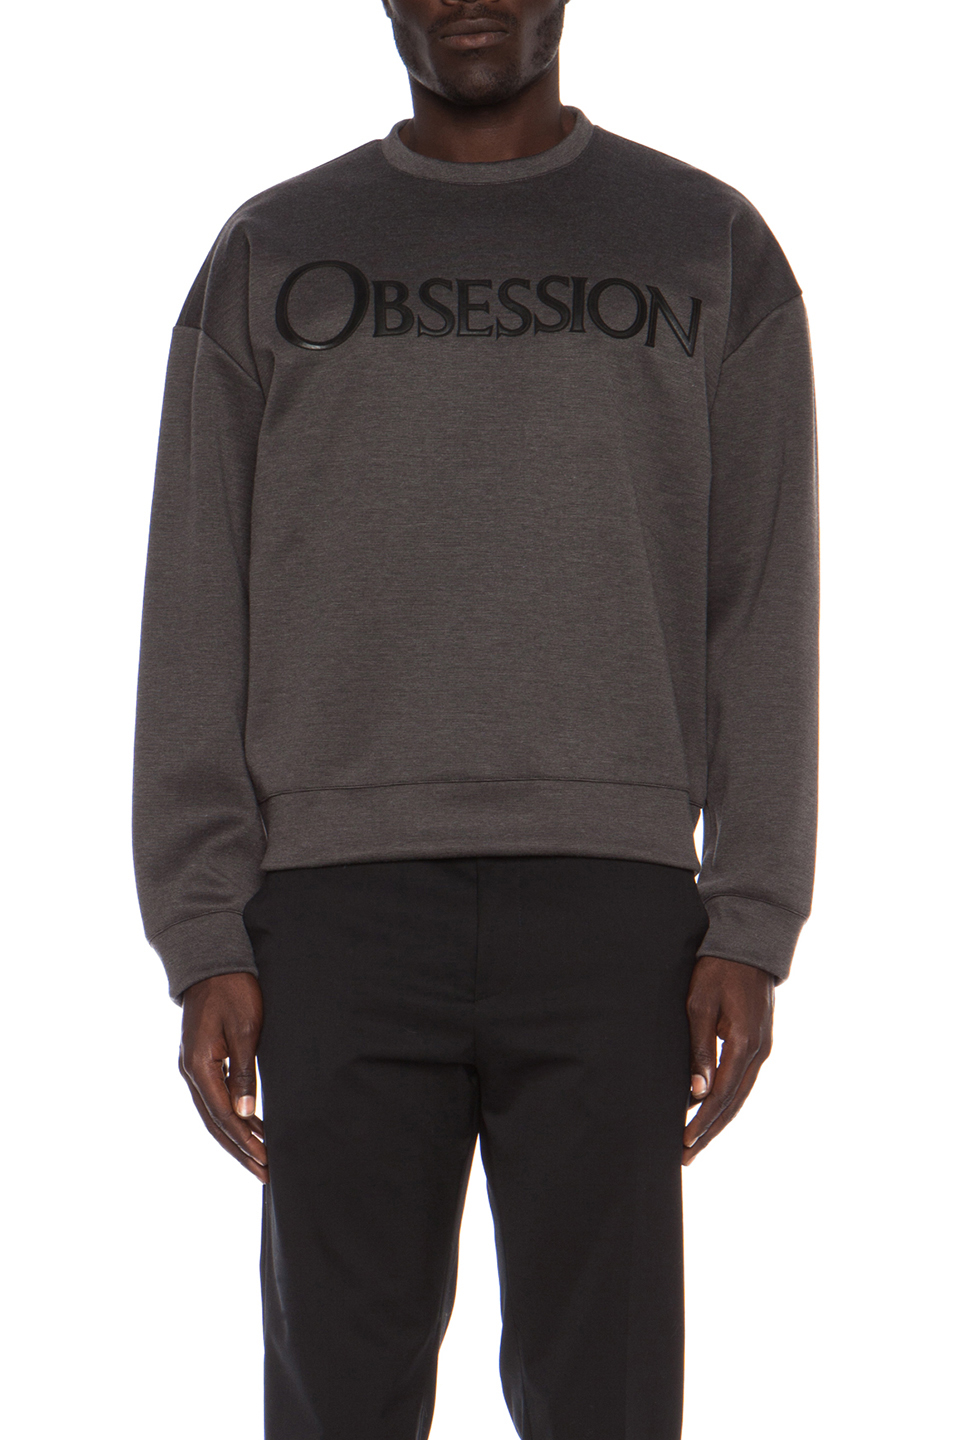 Calvin Klein Collection | Oversized Obsession Poly-Blend Sweatshirt in Gotham